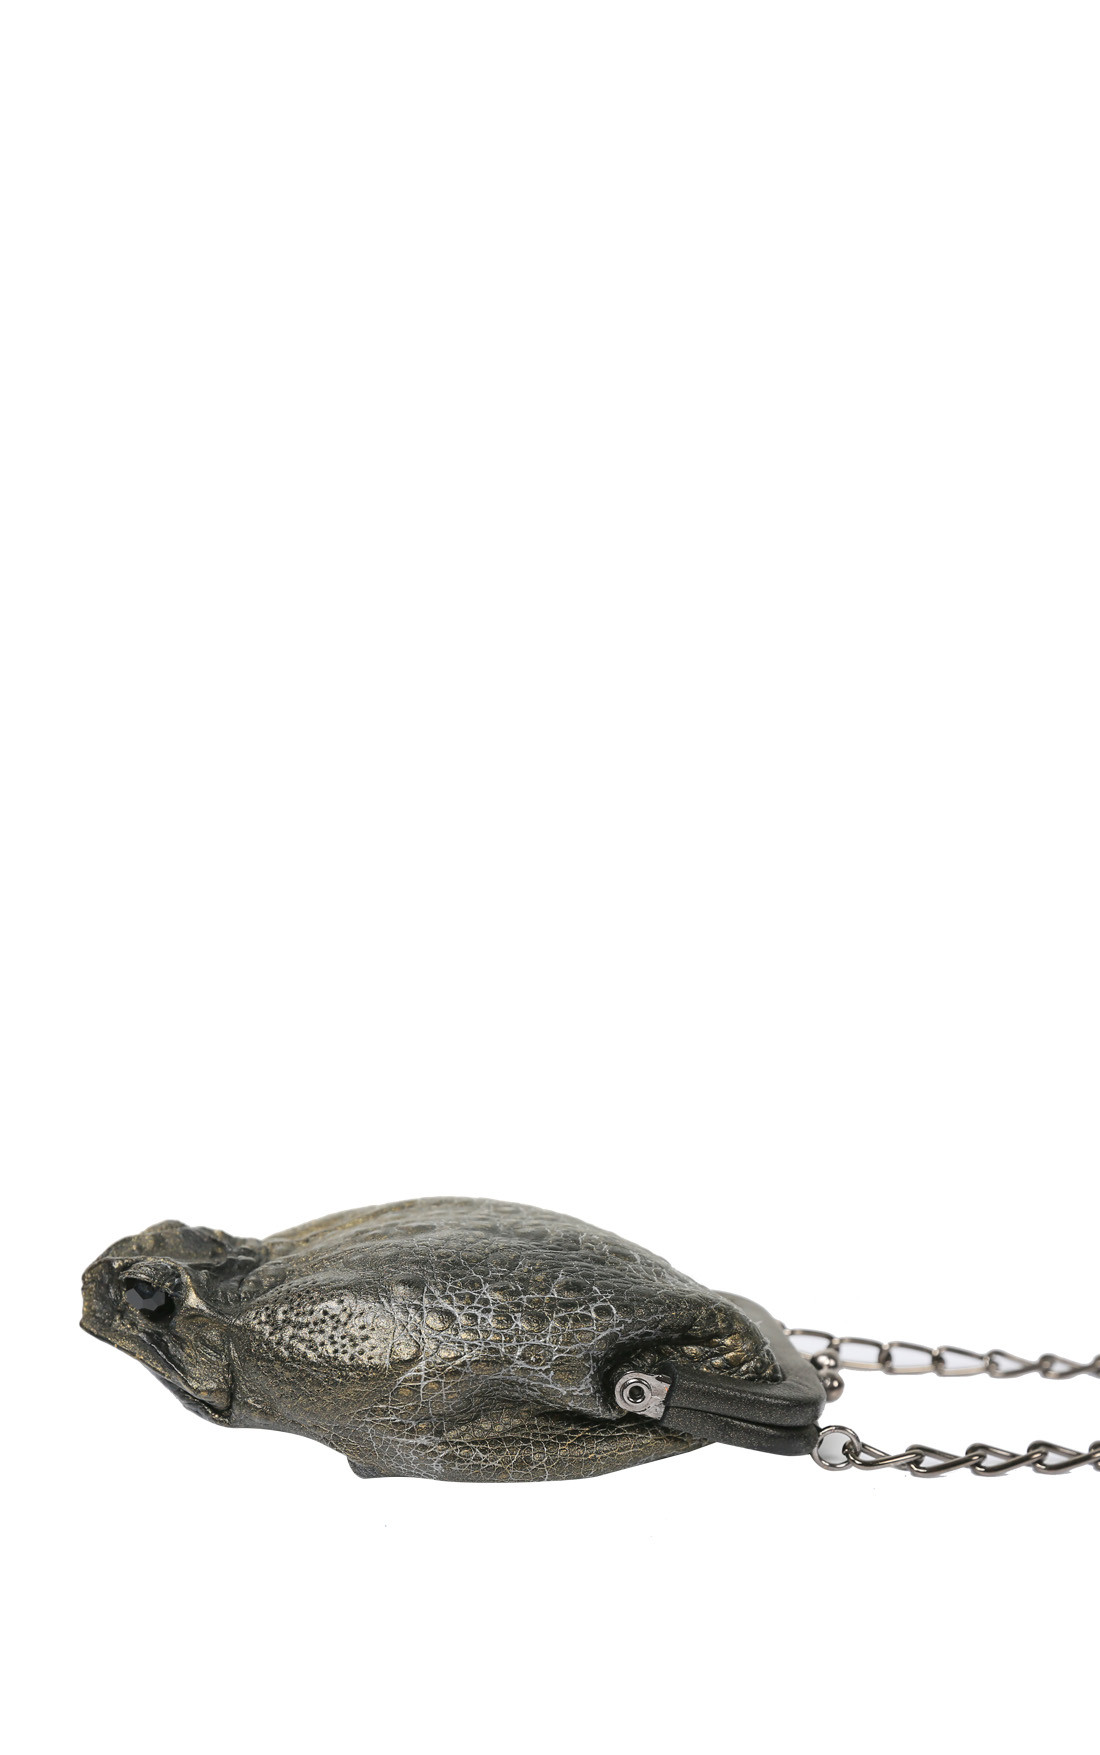 Kobja - Bronze Purse with Chain (BronzeChain)